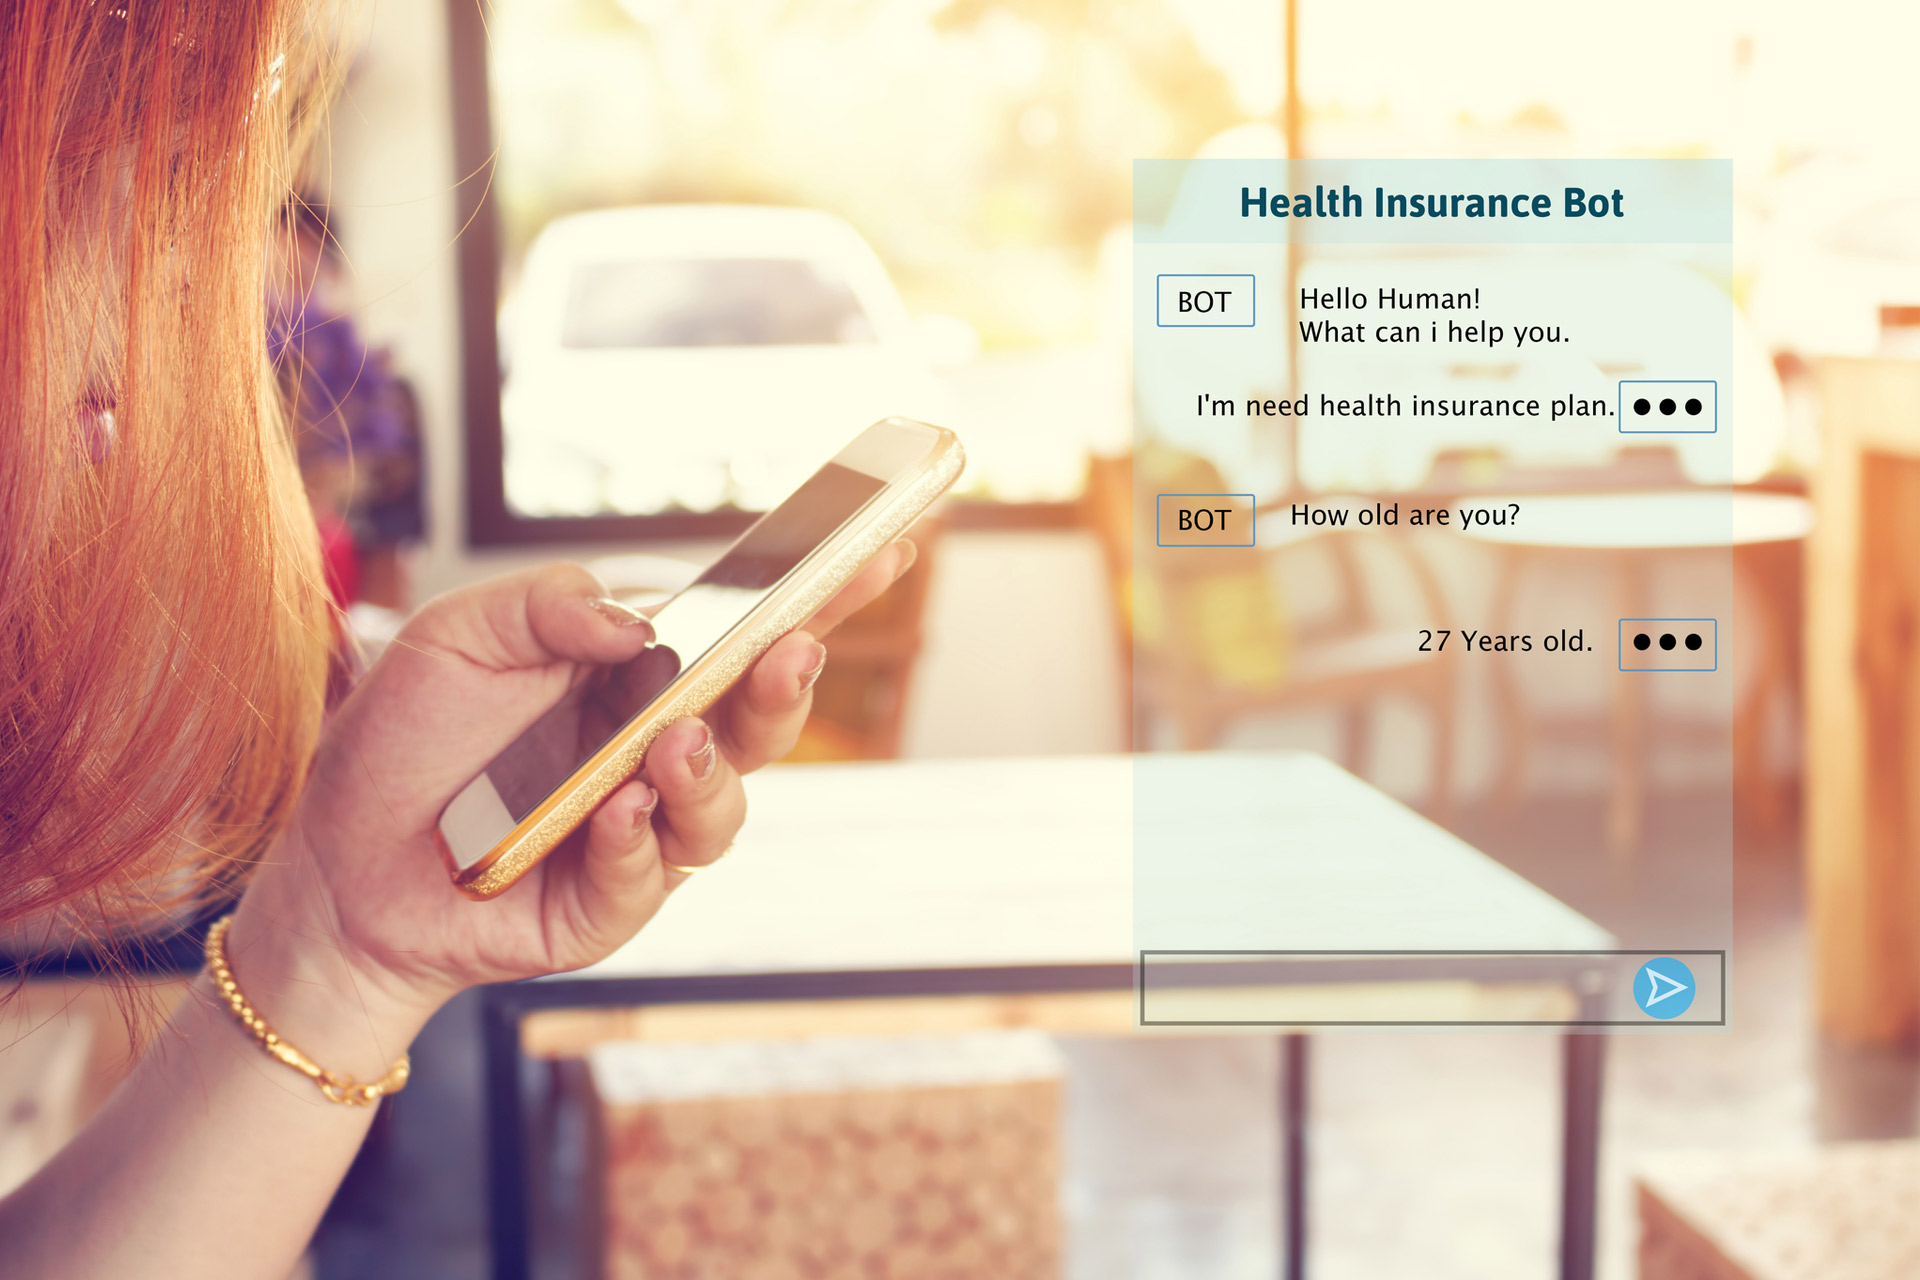 7 Benefits of AI-Enabled Chatbots for the Insurance Industry